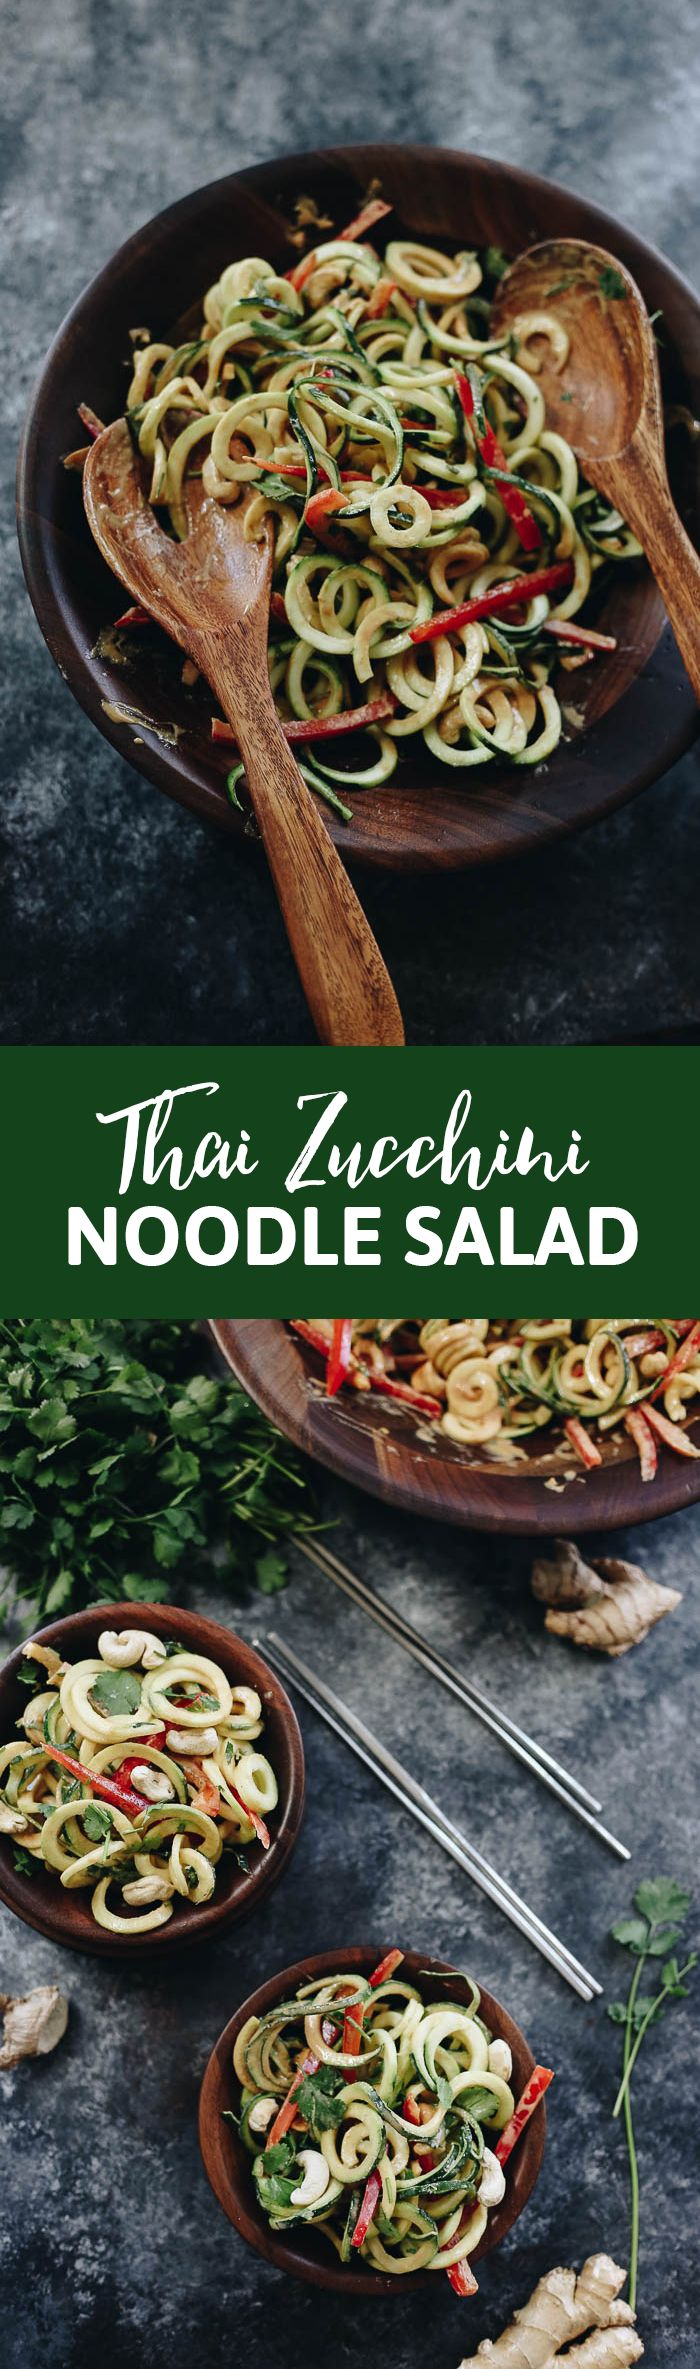 Get an extra dose of veggies with this Thai Zucchini Noodle Salad. Inspired by the flavors of Thailand but with a spiralized twist, you will love serving up this recipe as a healthy side dish or salad starter.